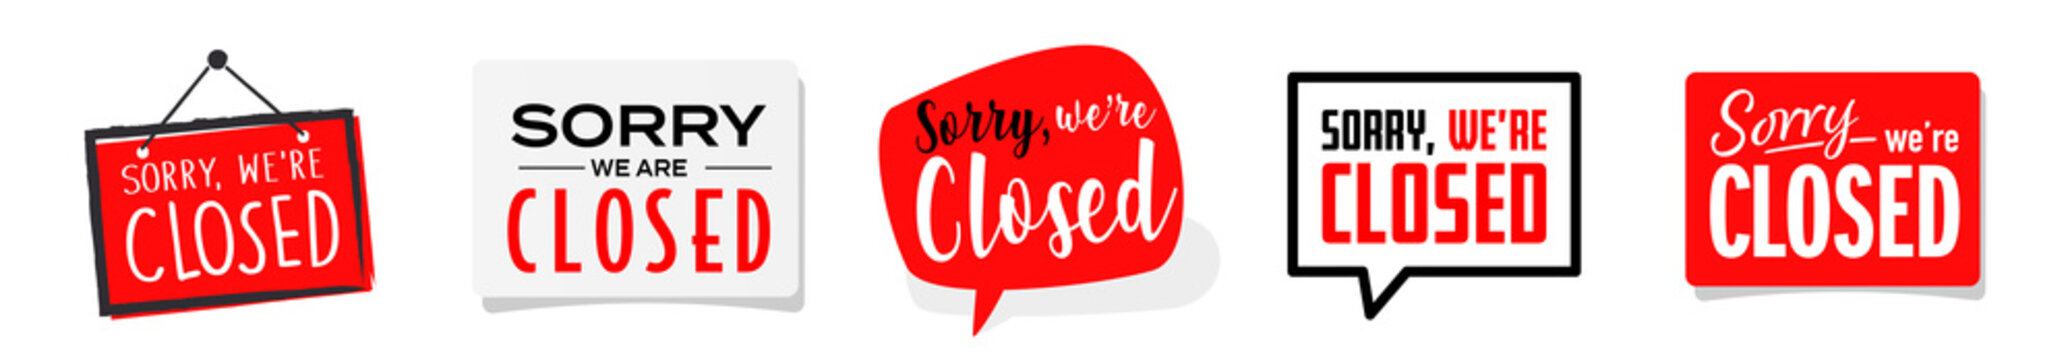 Set of Sorry we are closed sign